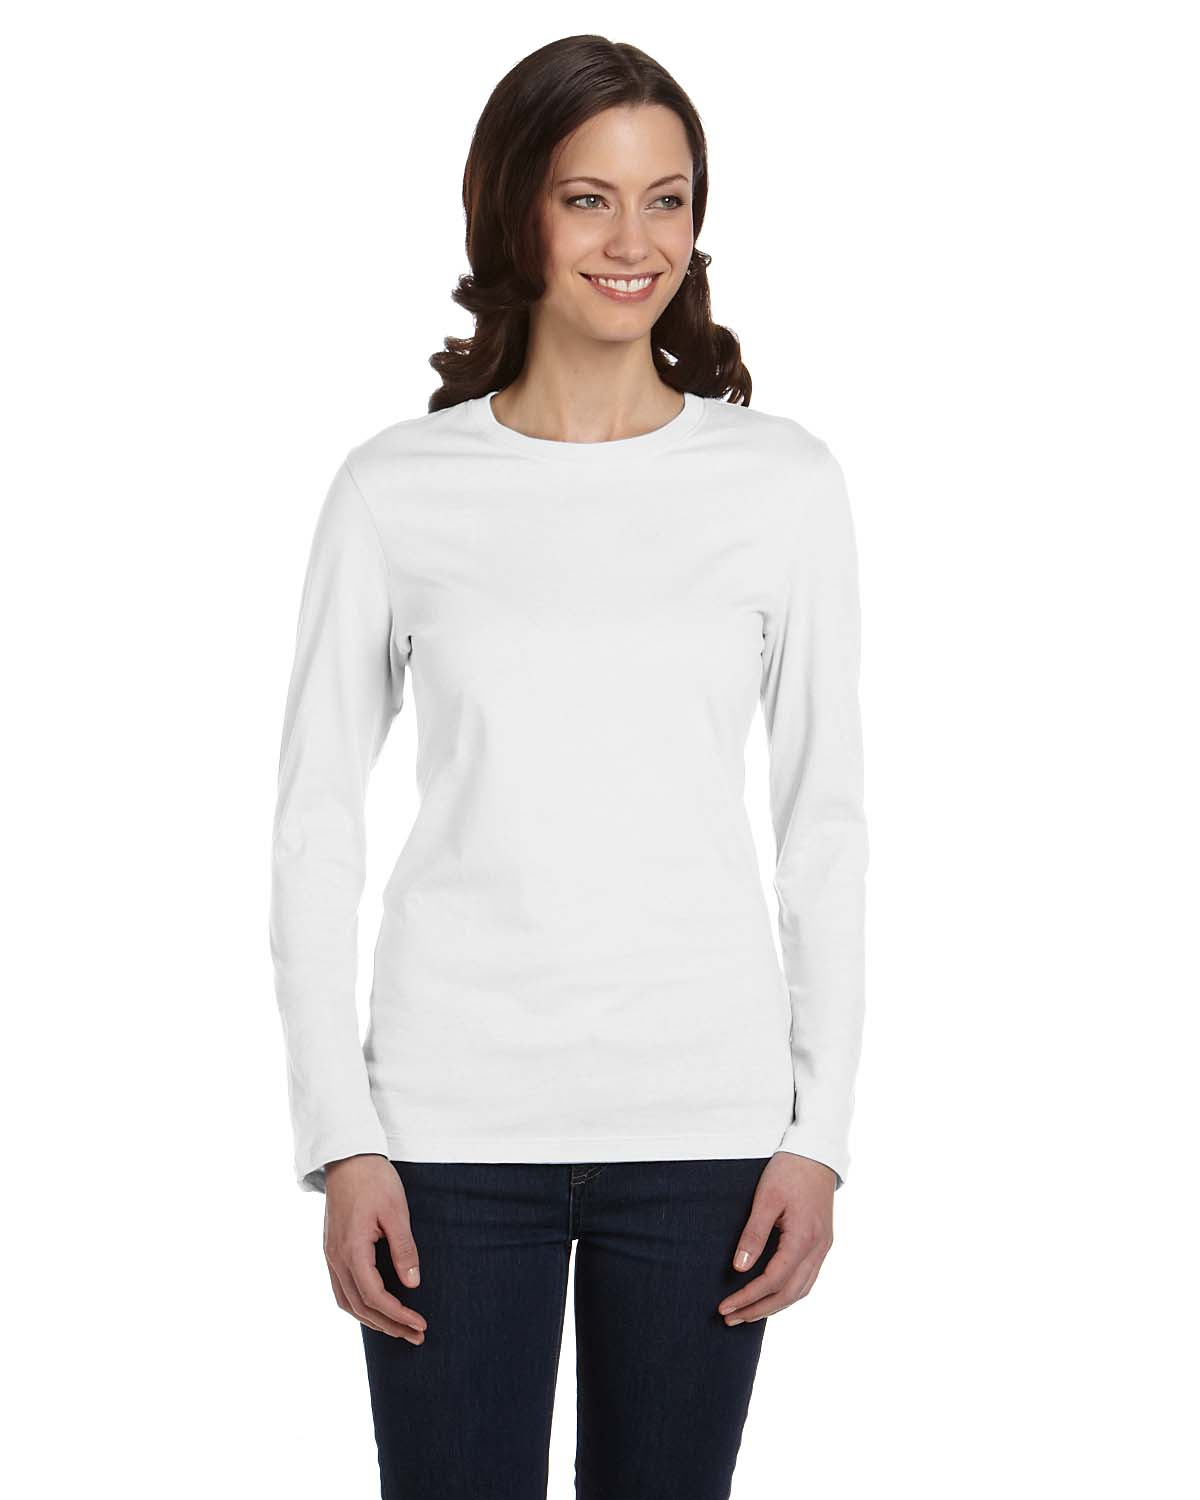 Womens Long Sleeve T Shirts. Stay warm and comfortable without compromising the desire to look laid back and casual by creating a fashion ensemble that includes a long-sleeve t-shirt or top. Available in a variety of colors and styles, women's long-sleeve t-shirts are a comfortable and stylish way to add a layer of warmth and protection against colder temperatures.